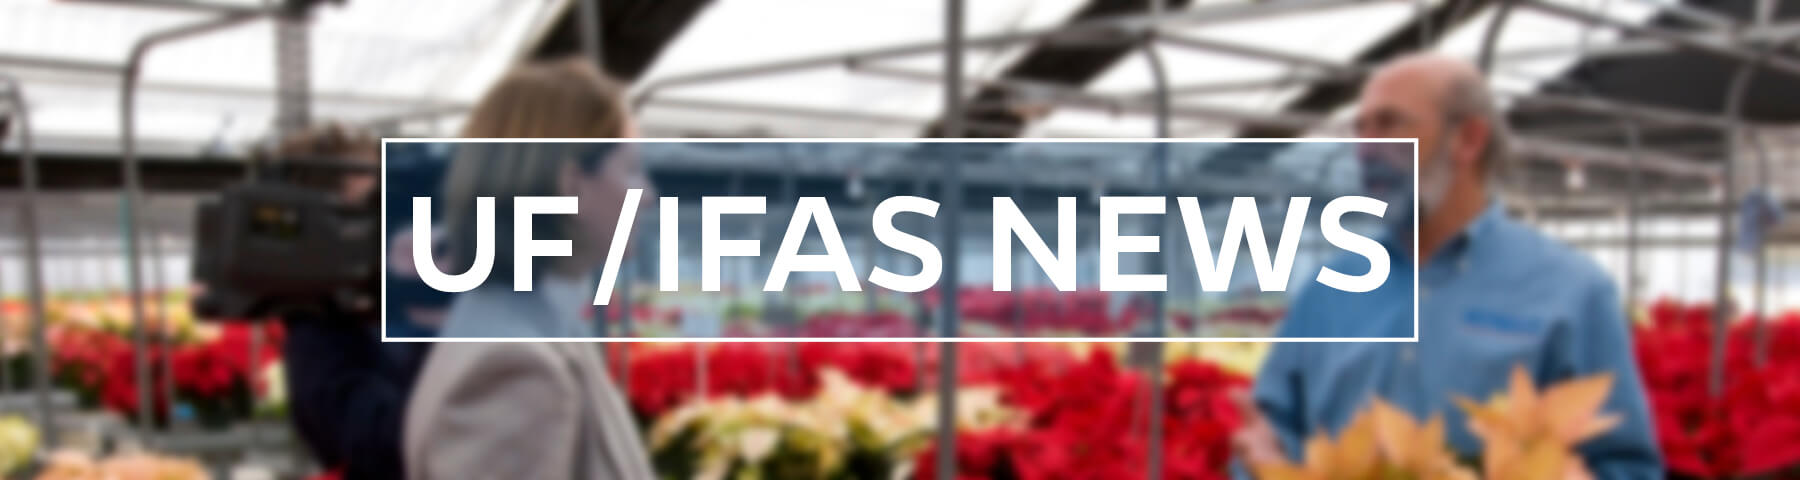 UF/IFAS News